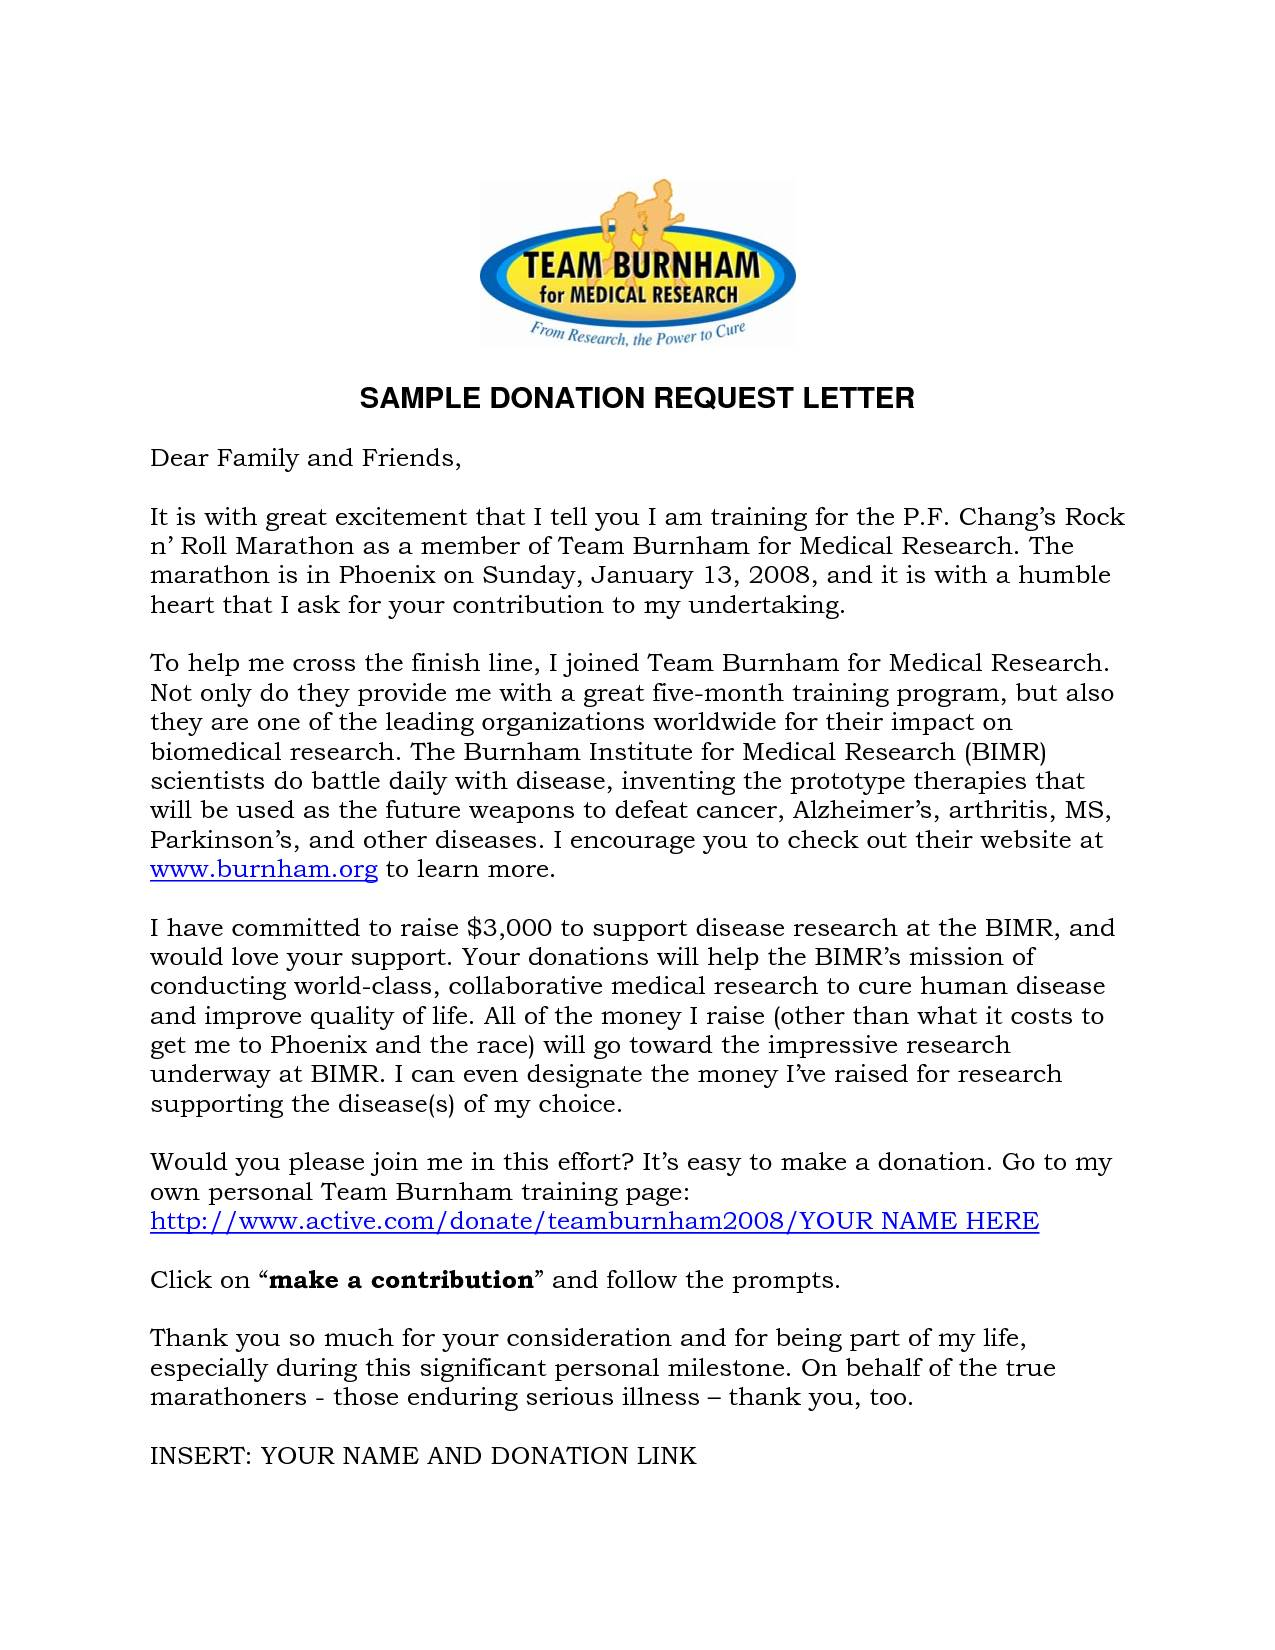 Template For Donation Request Letter